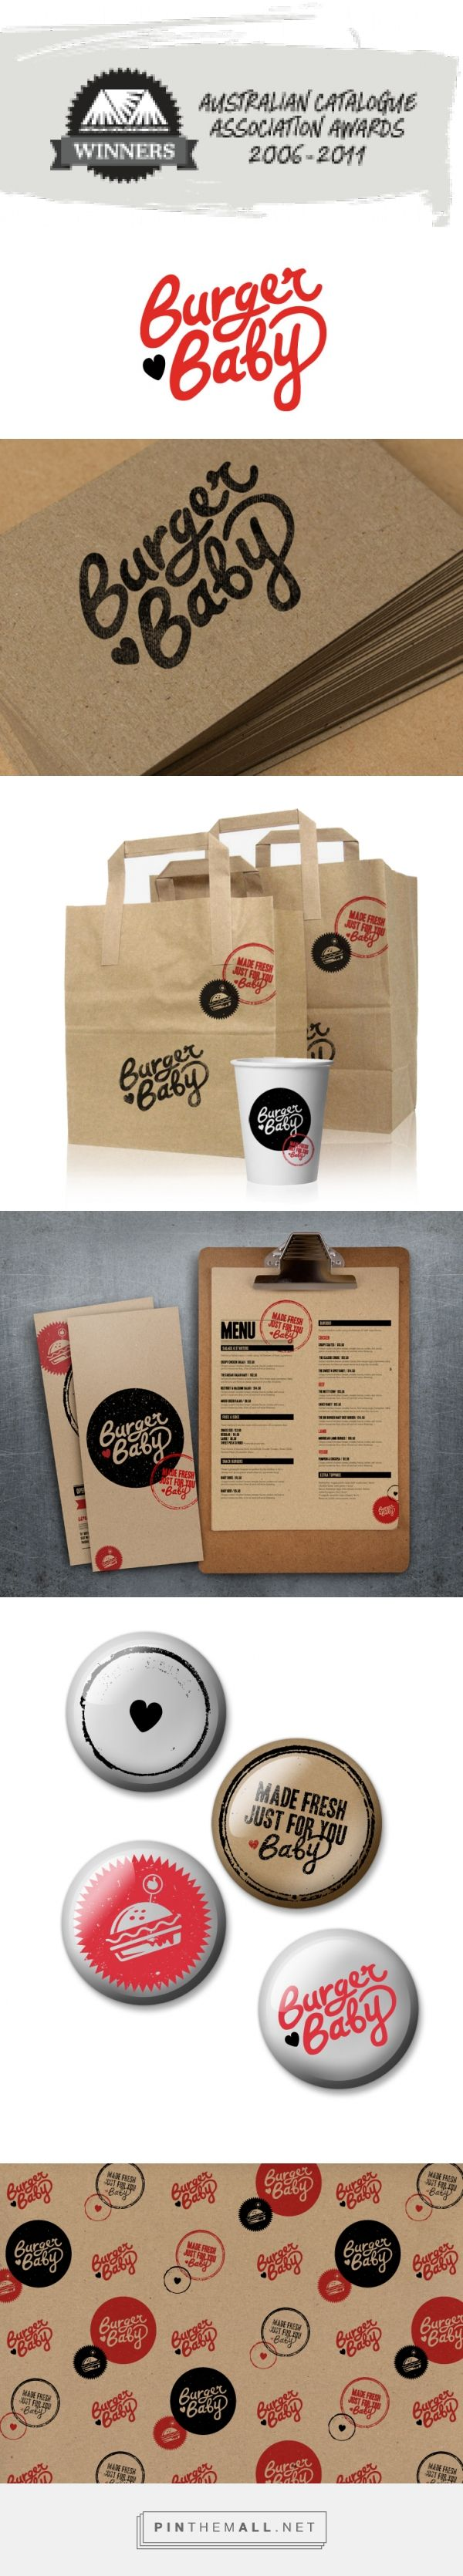 Burger Baby logo and #packaging Emedia Creative curated by Packaging Diva PD. Who's ready for a burger baby : ) created via http://www.emediacreative.com.au/project/burger-baby-logo/